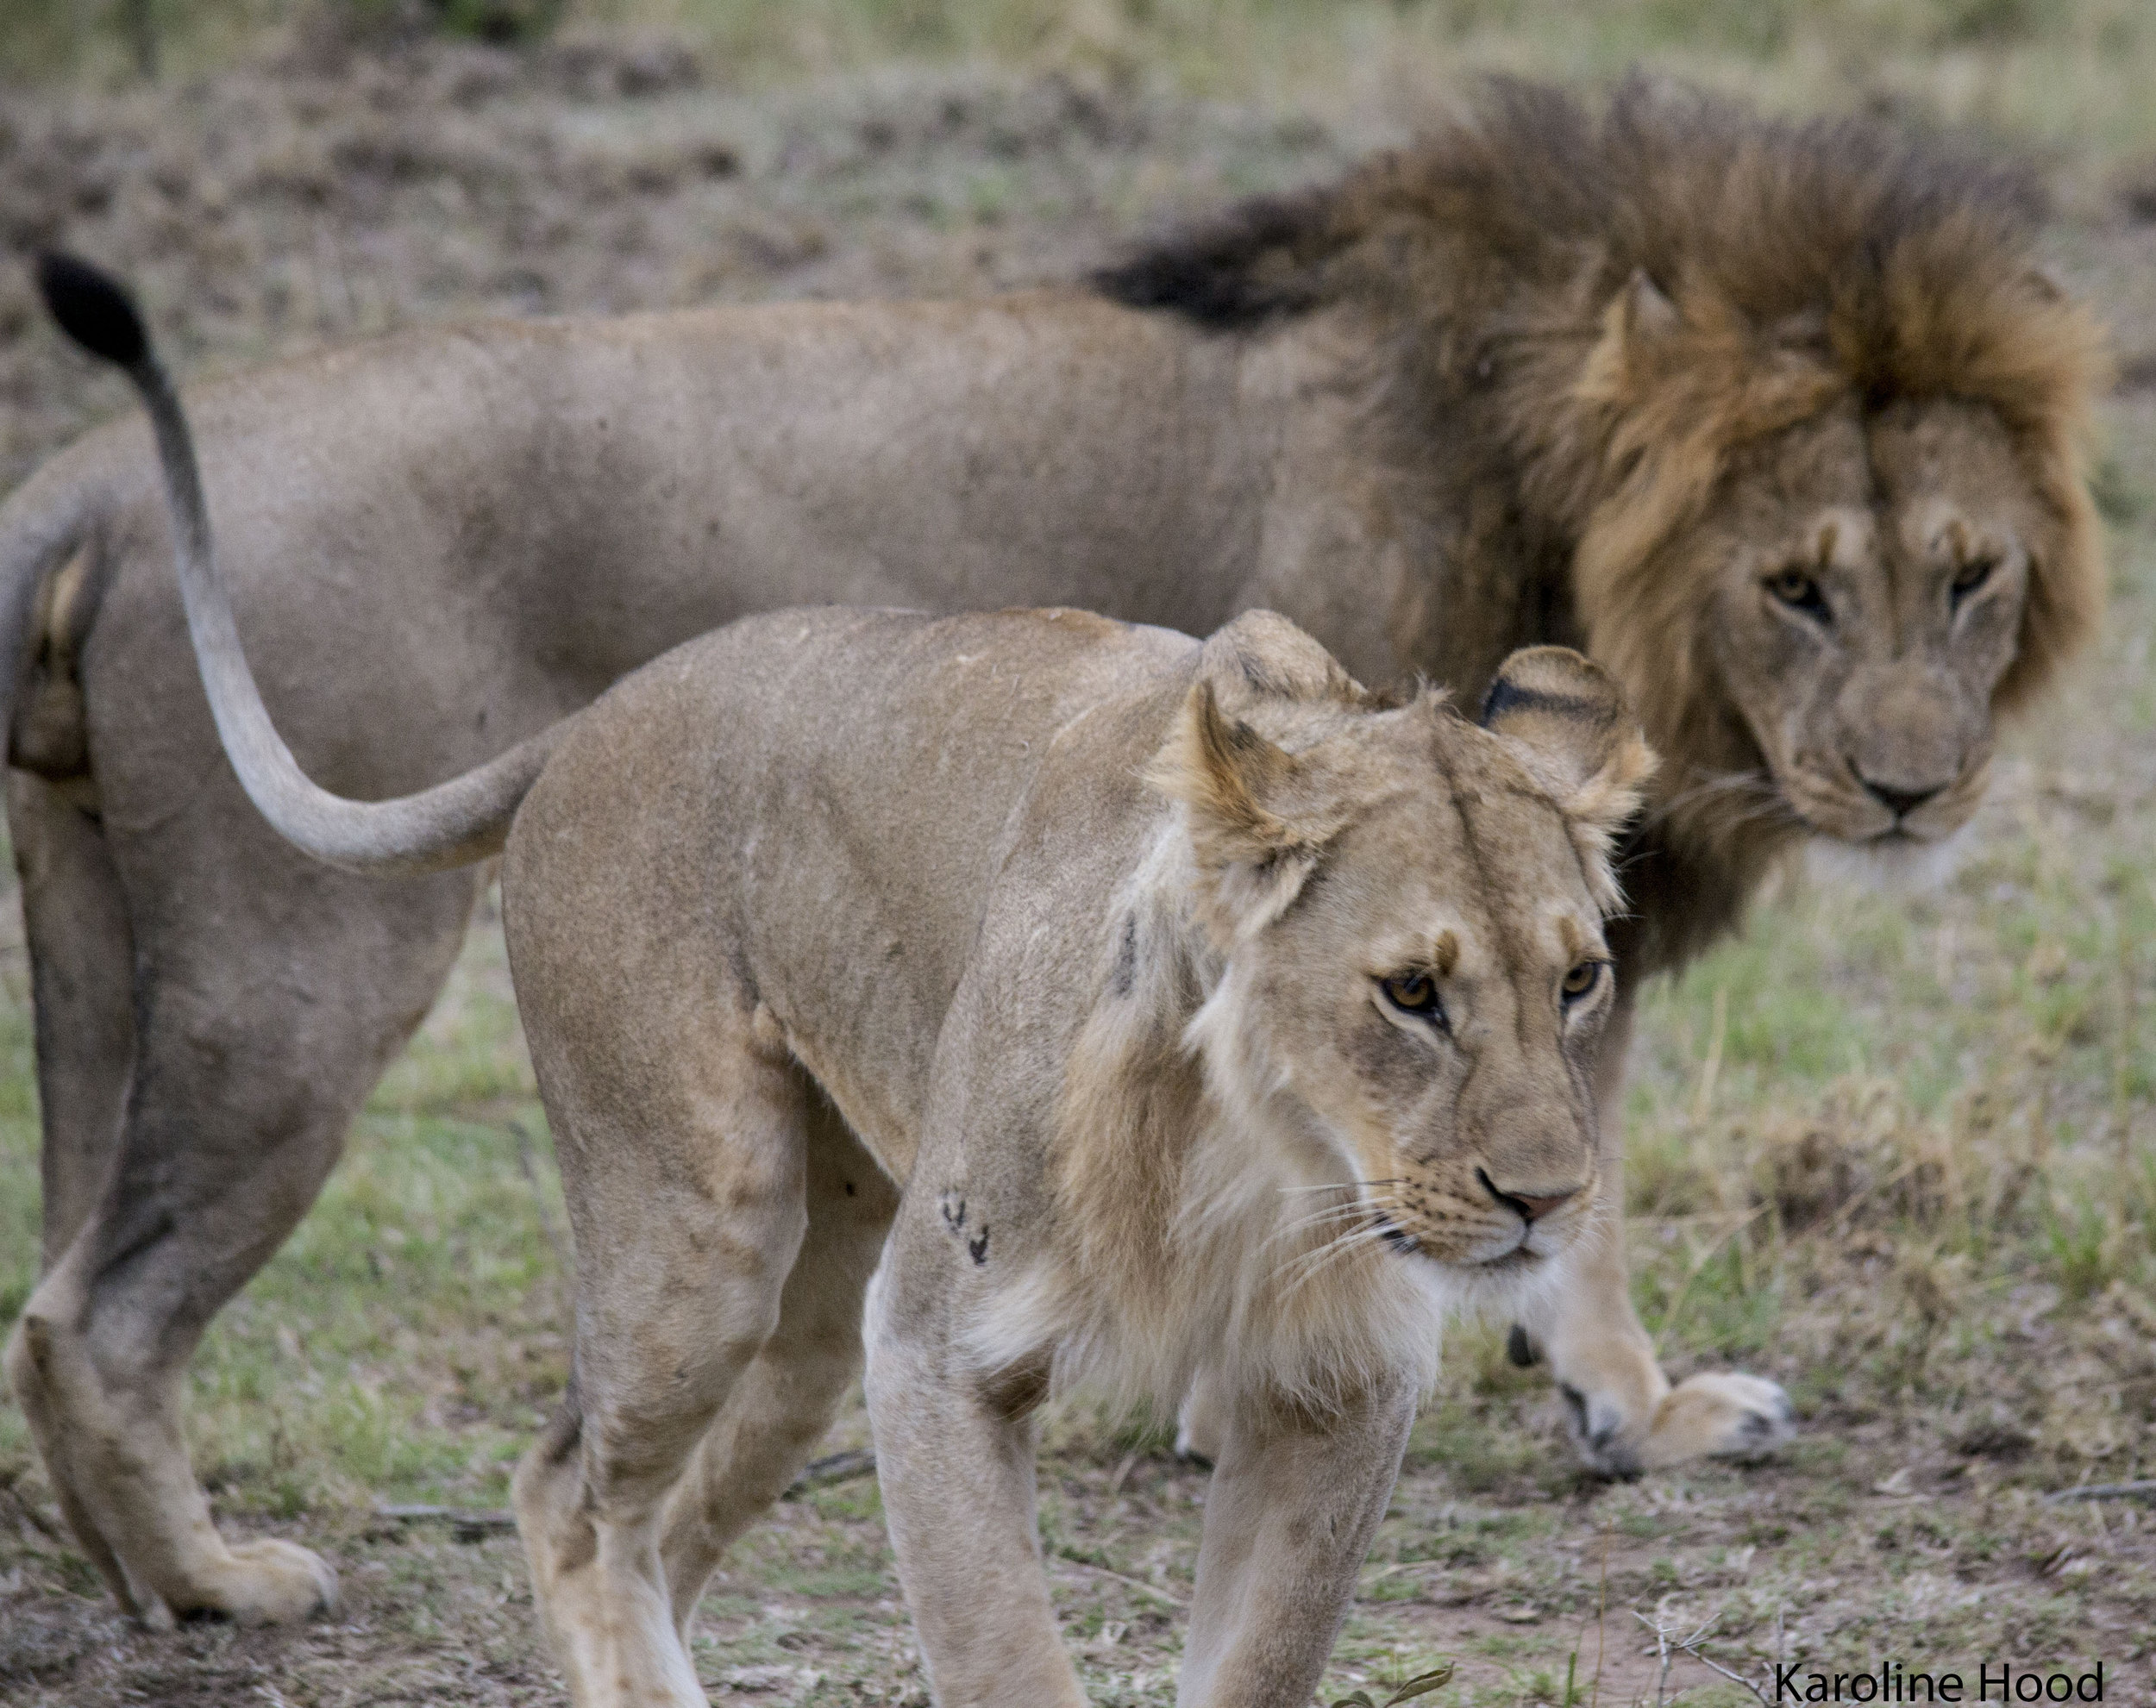 Photo by Karoline Hood. Lions mating, the female is a sub-adult called Locoman, she is growing a mane.